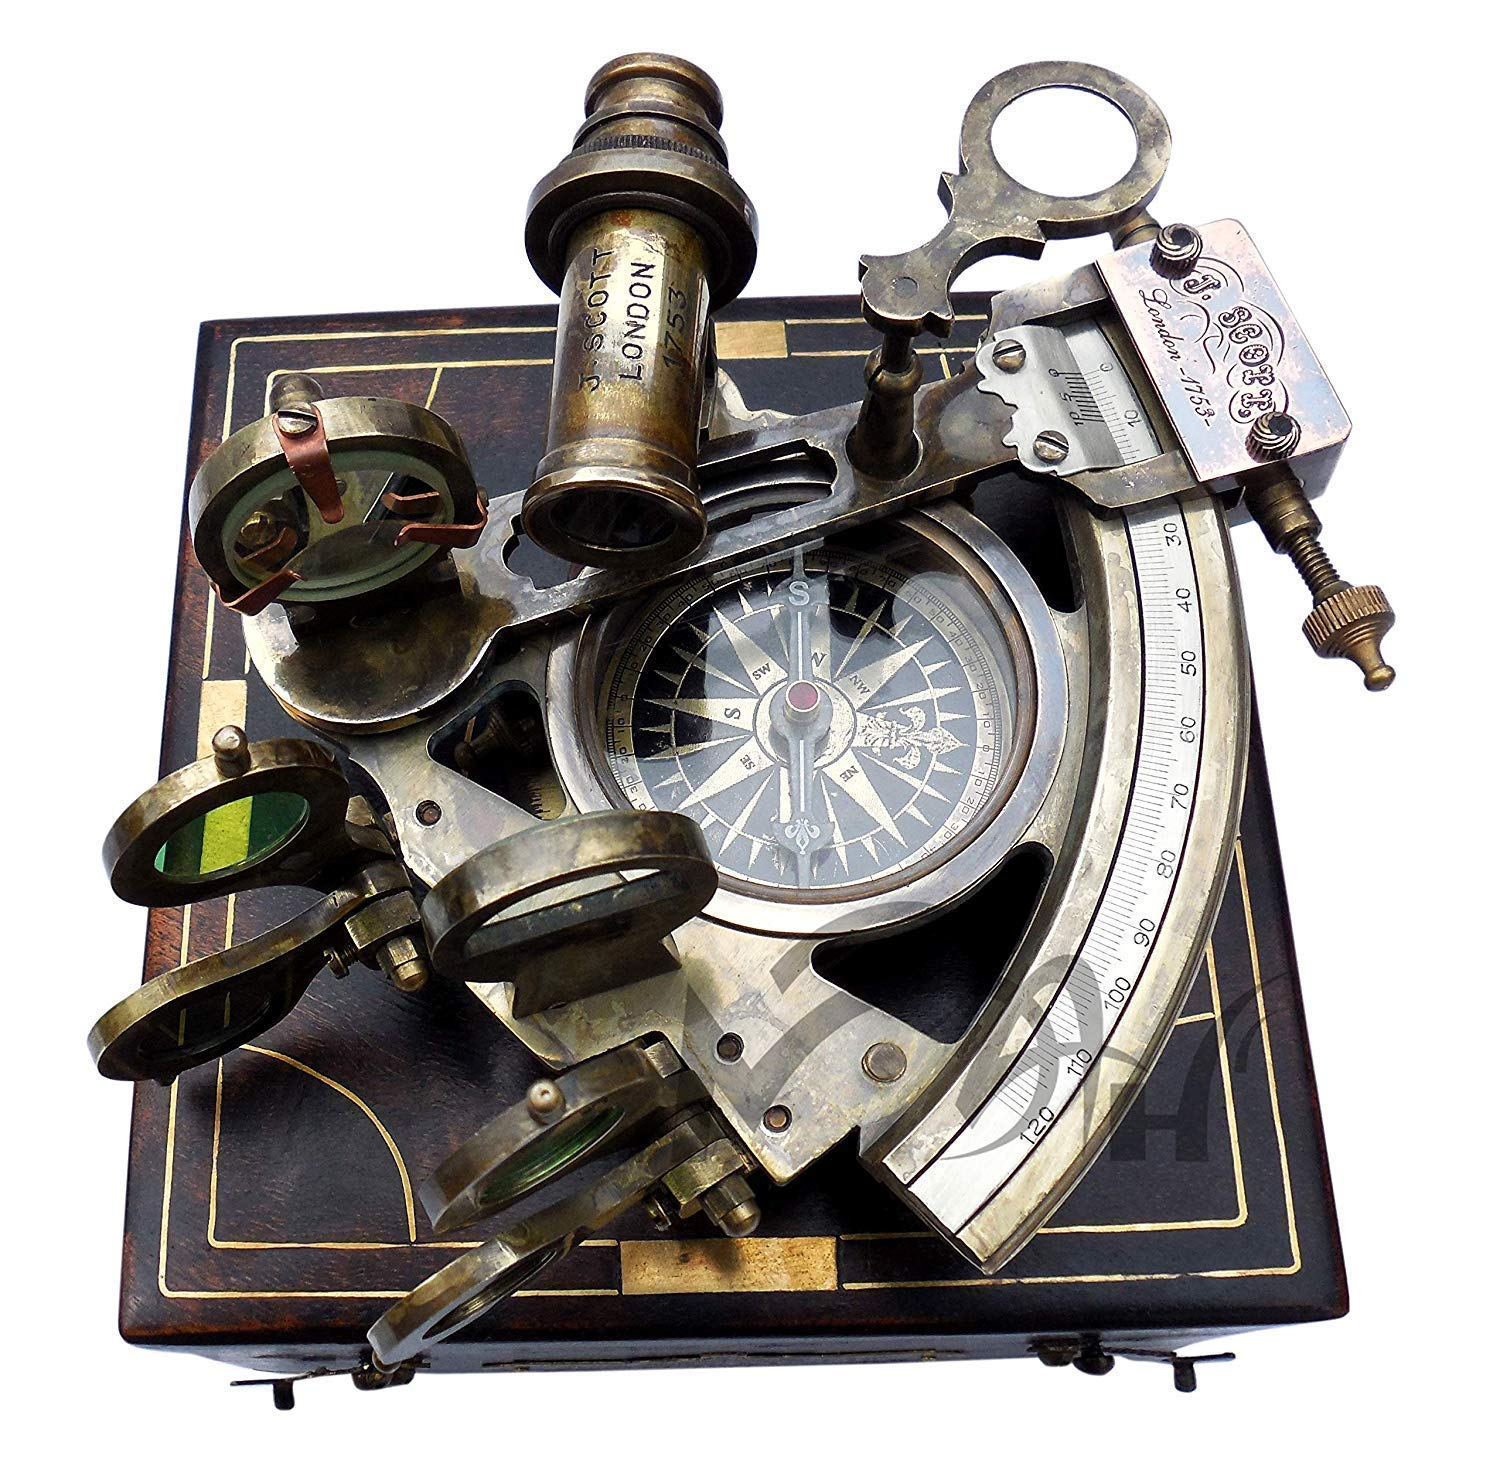 MAH Astrolabe Brass Sextant with Compass Hardwood Box. C-3250 by MAH